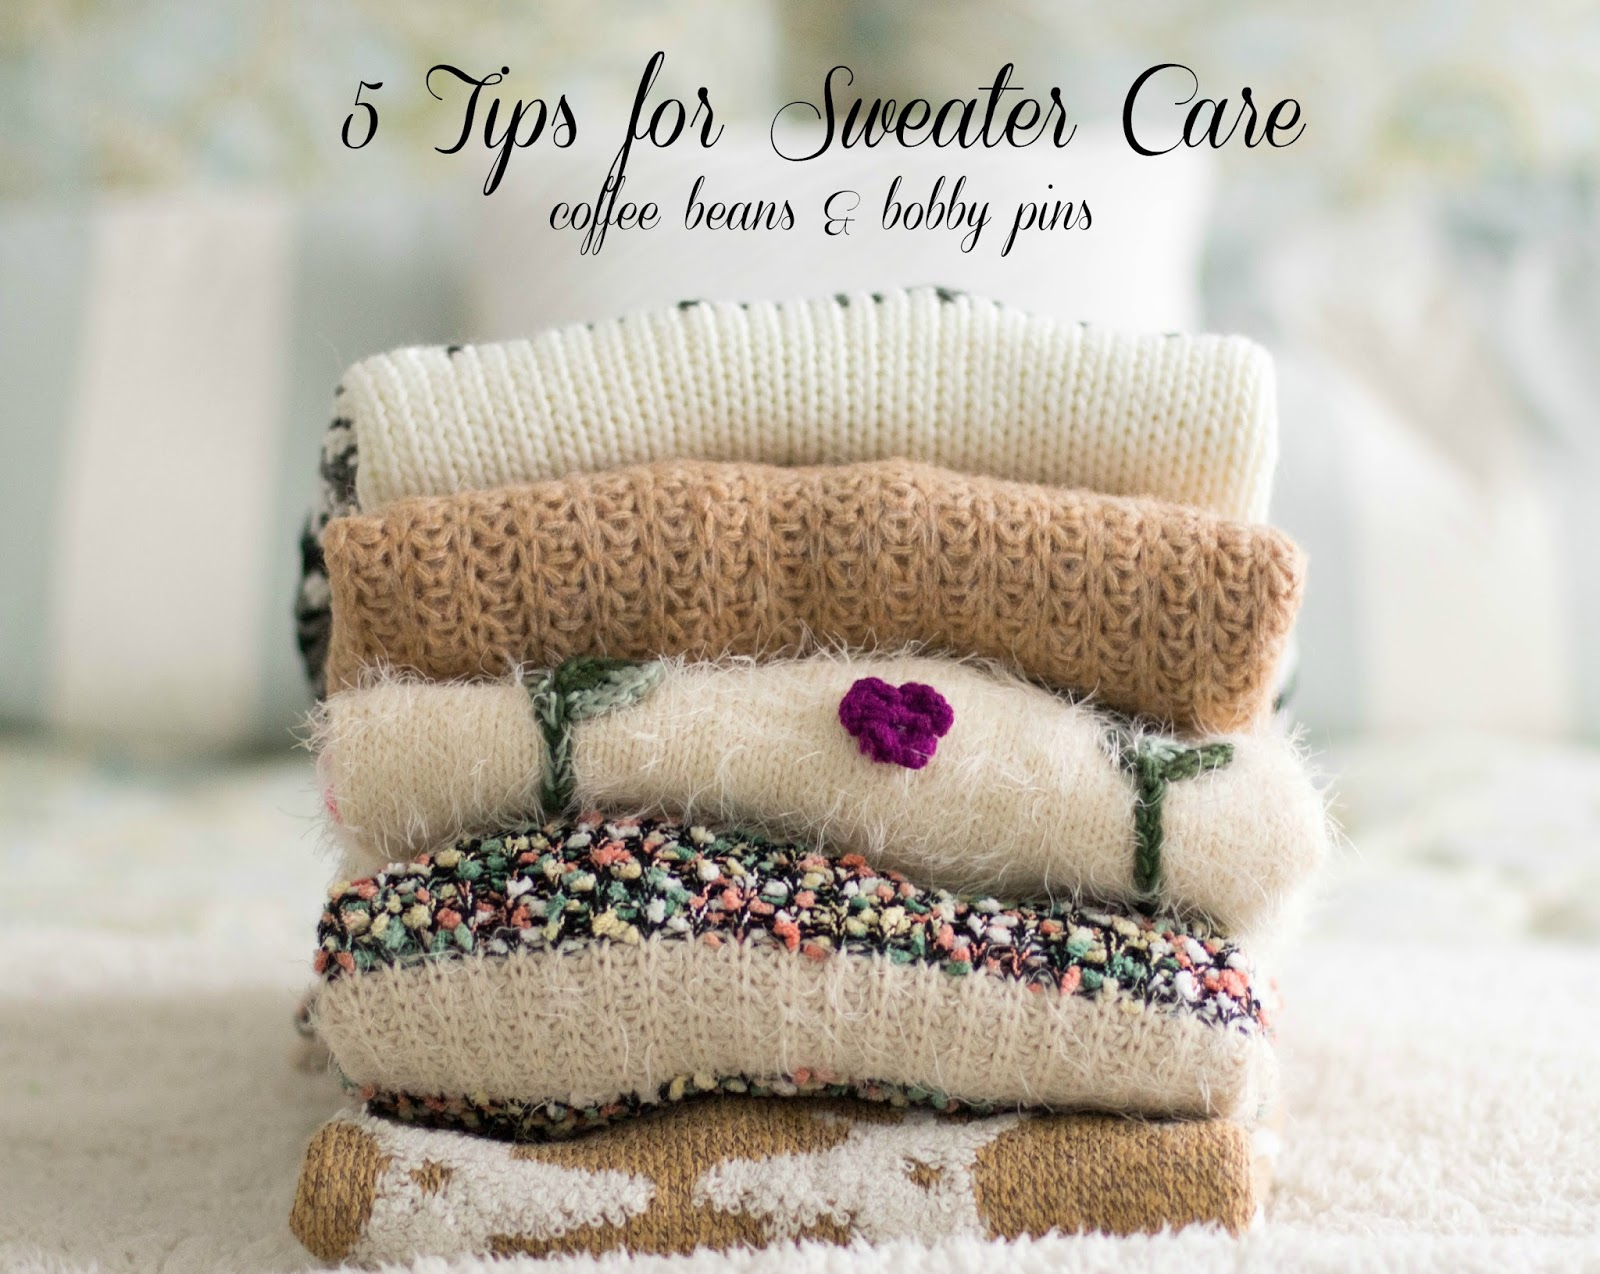 5 Tips for Sweater Care